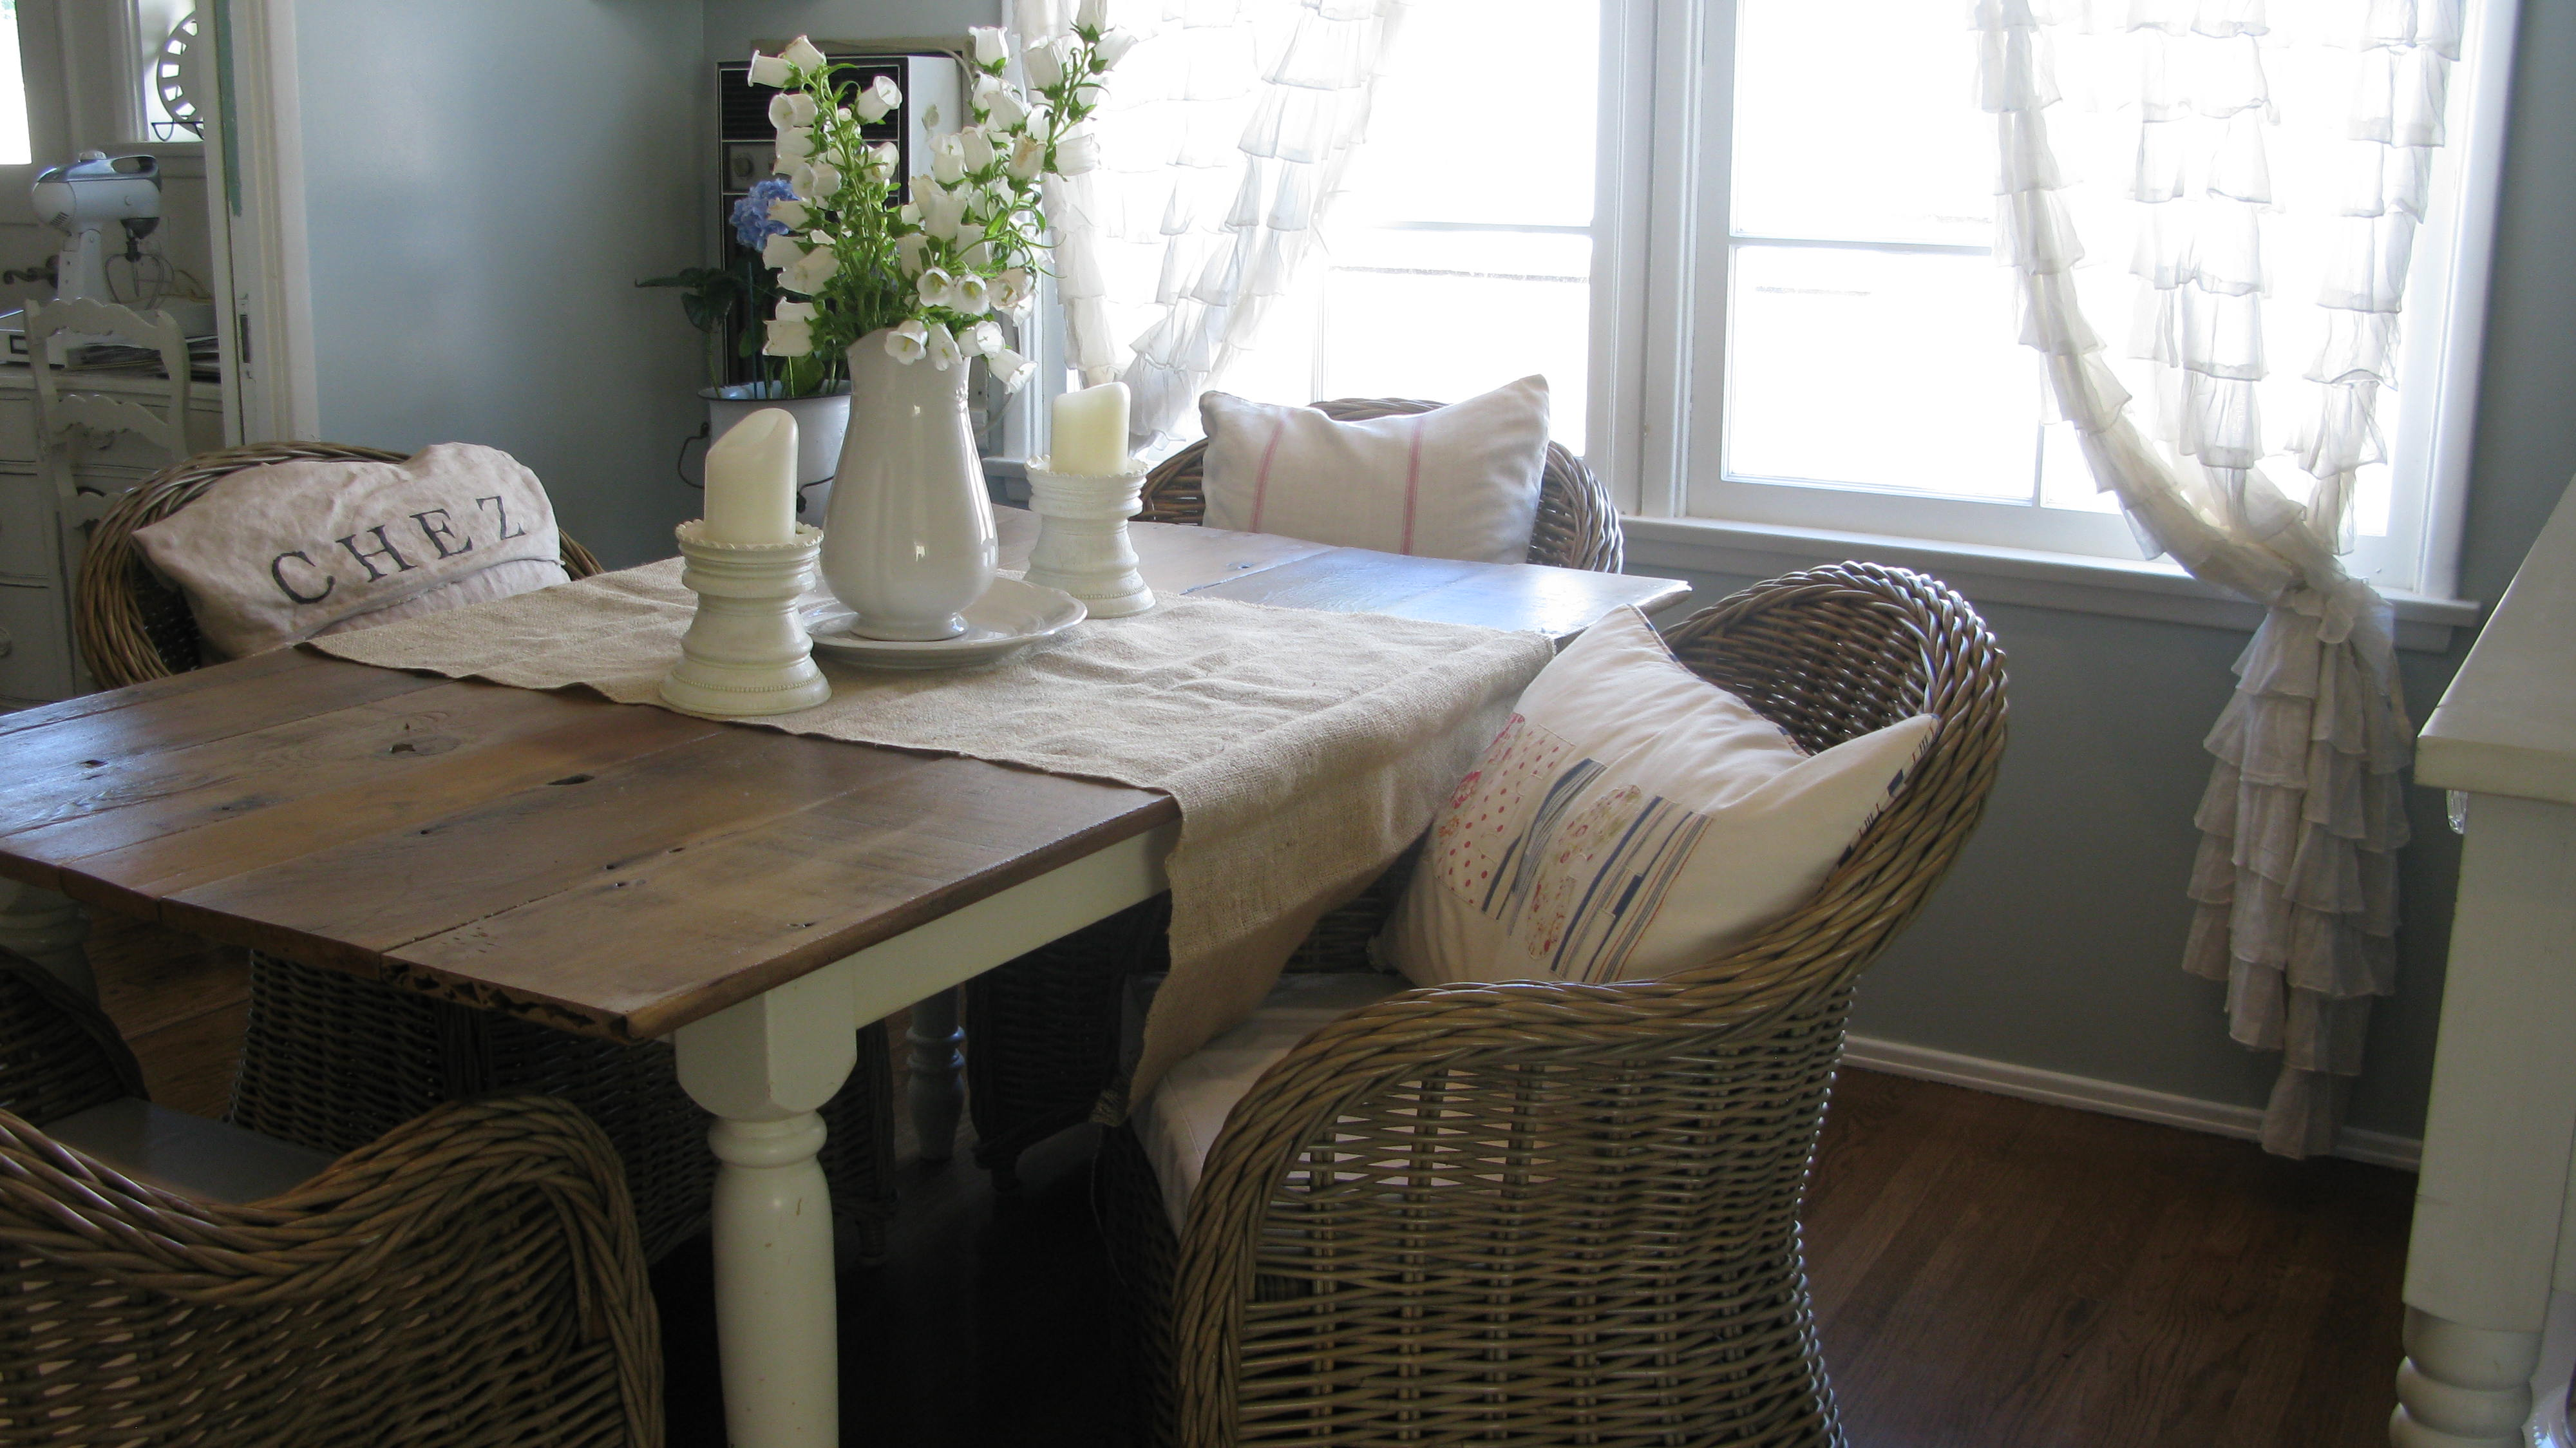 annie sloan chalk paint what do you think it worth the hype  annie sloan chalk paint kitchen tables techniques annie sloan chalk paint kitchen table   room image and wallper 2017  rh   lautadiaries com